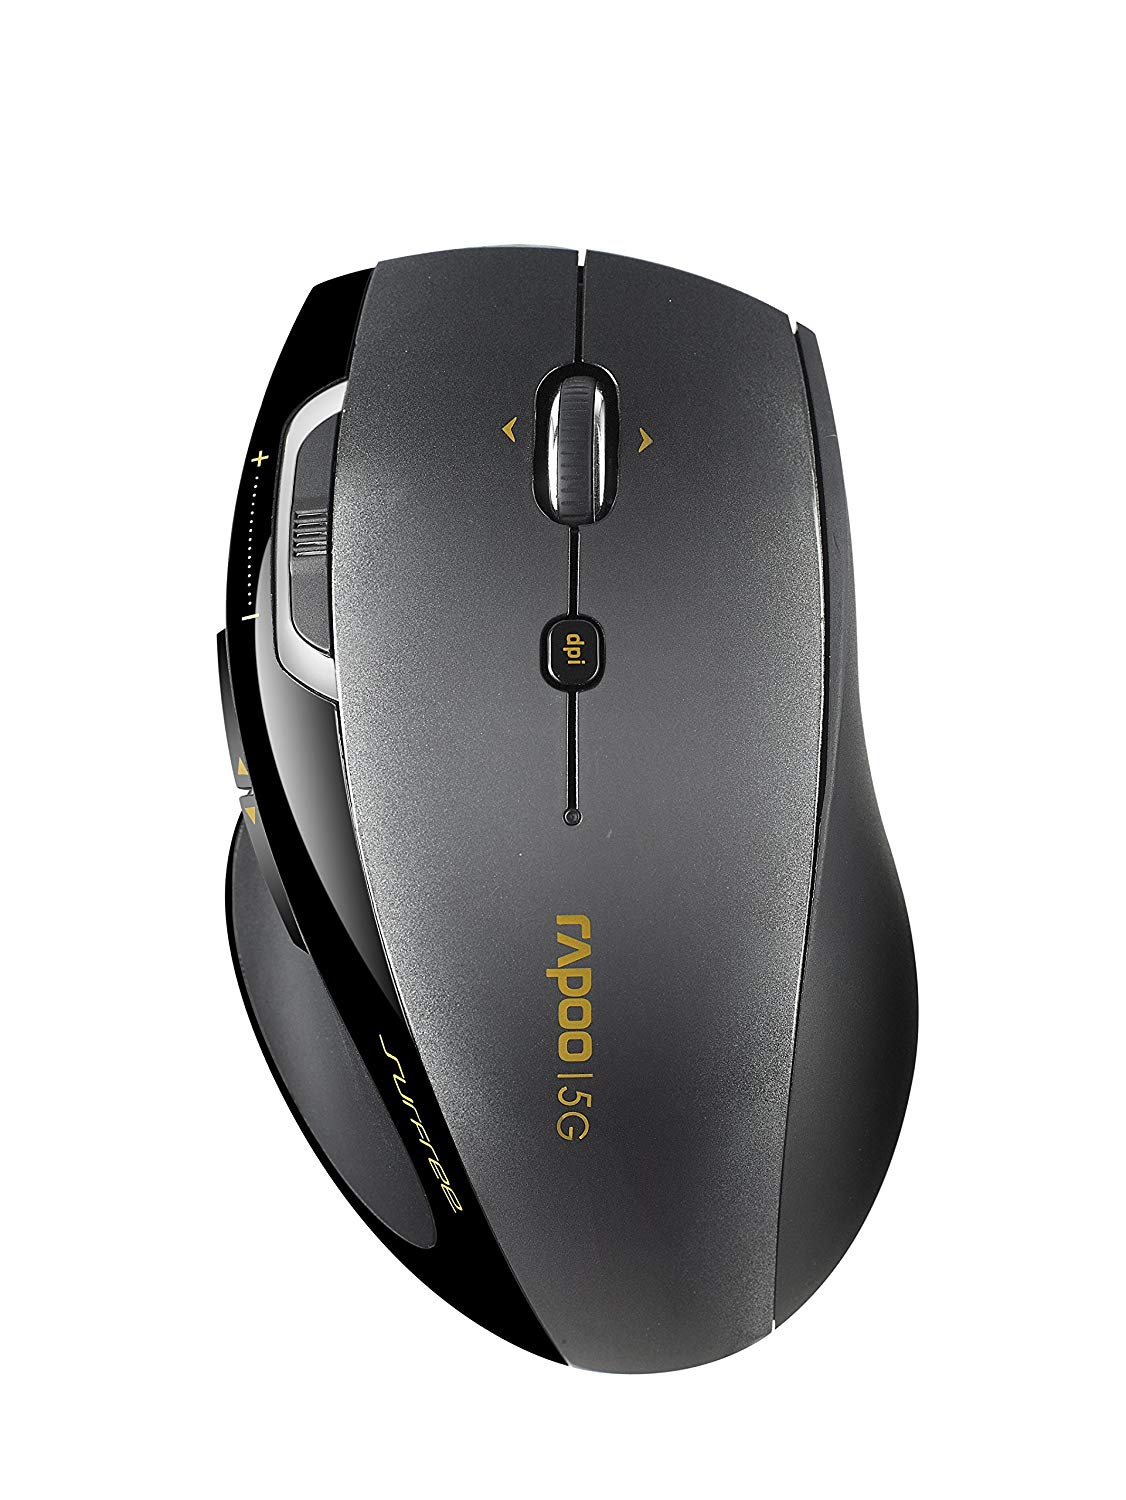 Original Rapoo 7800P 5.8Ghz 9 Buttons Black Optical Wireless Mouse Computer Mice Free shipping genuine rapoo 1090 2 4ghz wireless 1000dpi usb optical mouse w receiver black 1 x aa